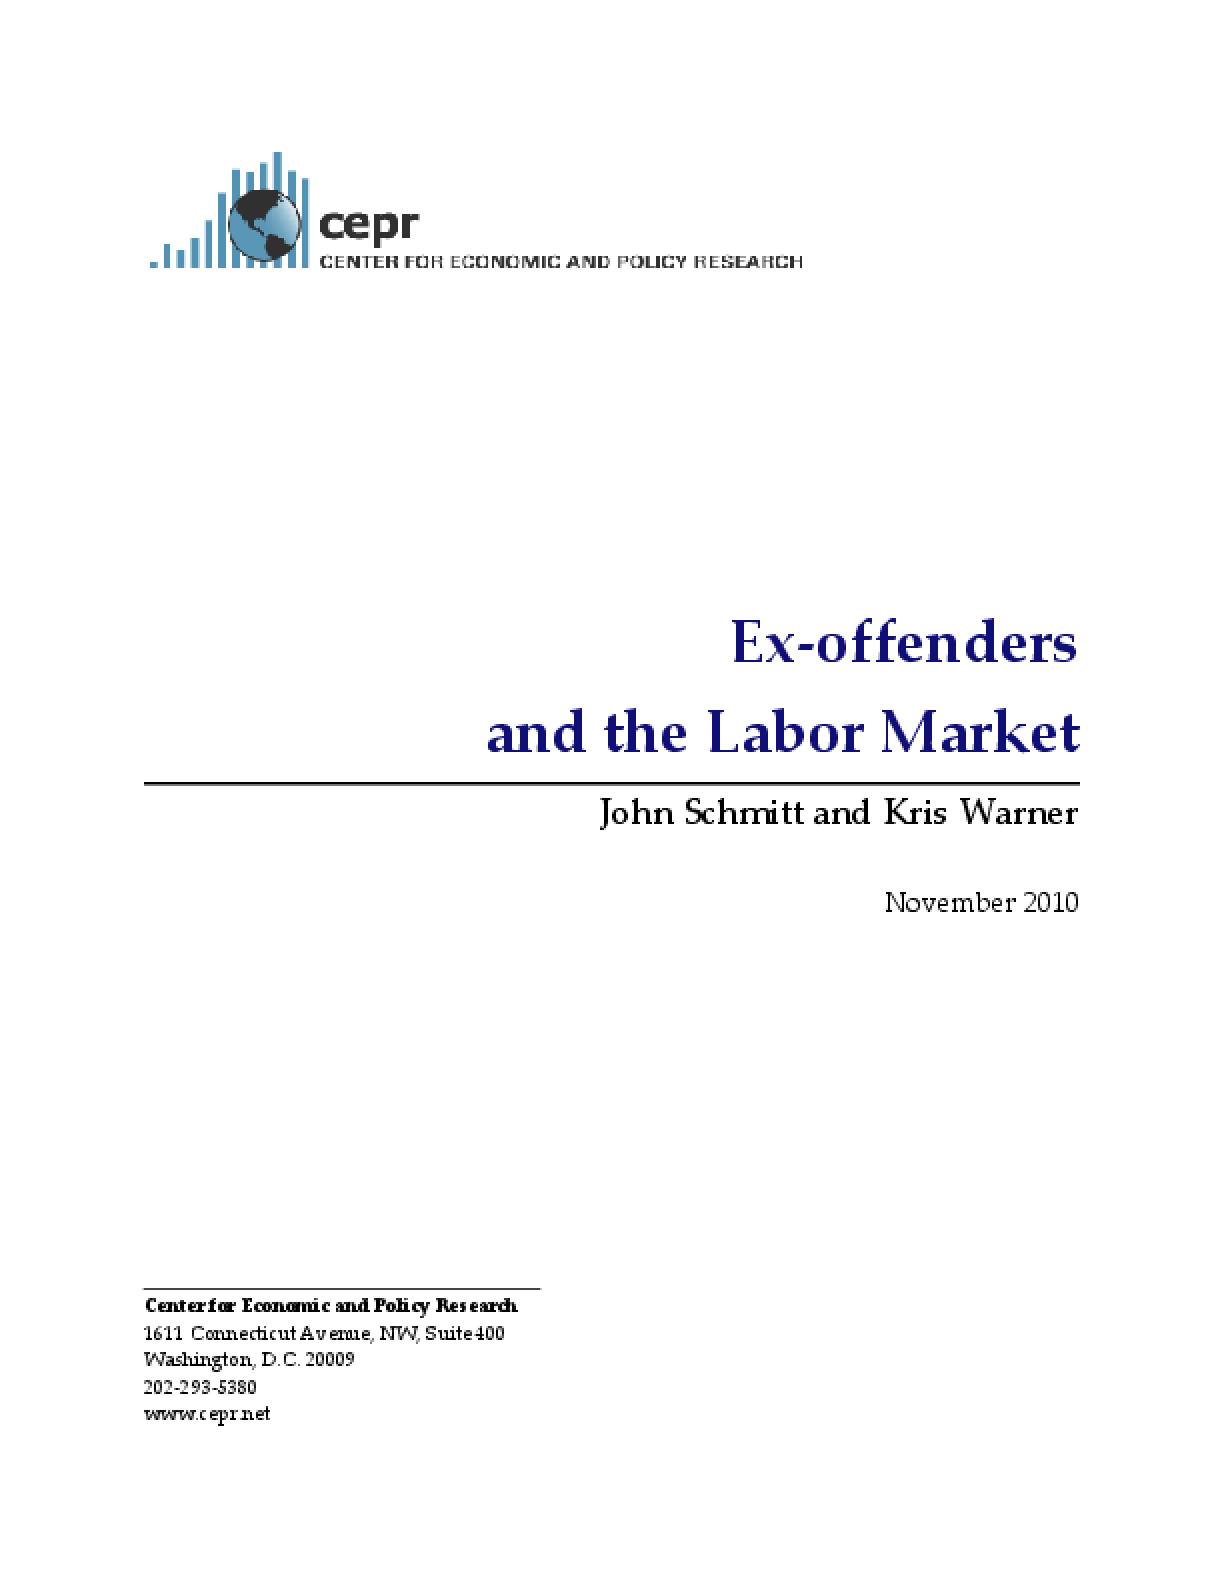 Ex-Offenders and the Labor Market